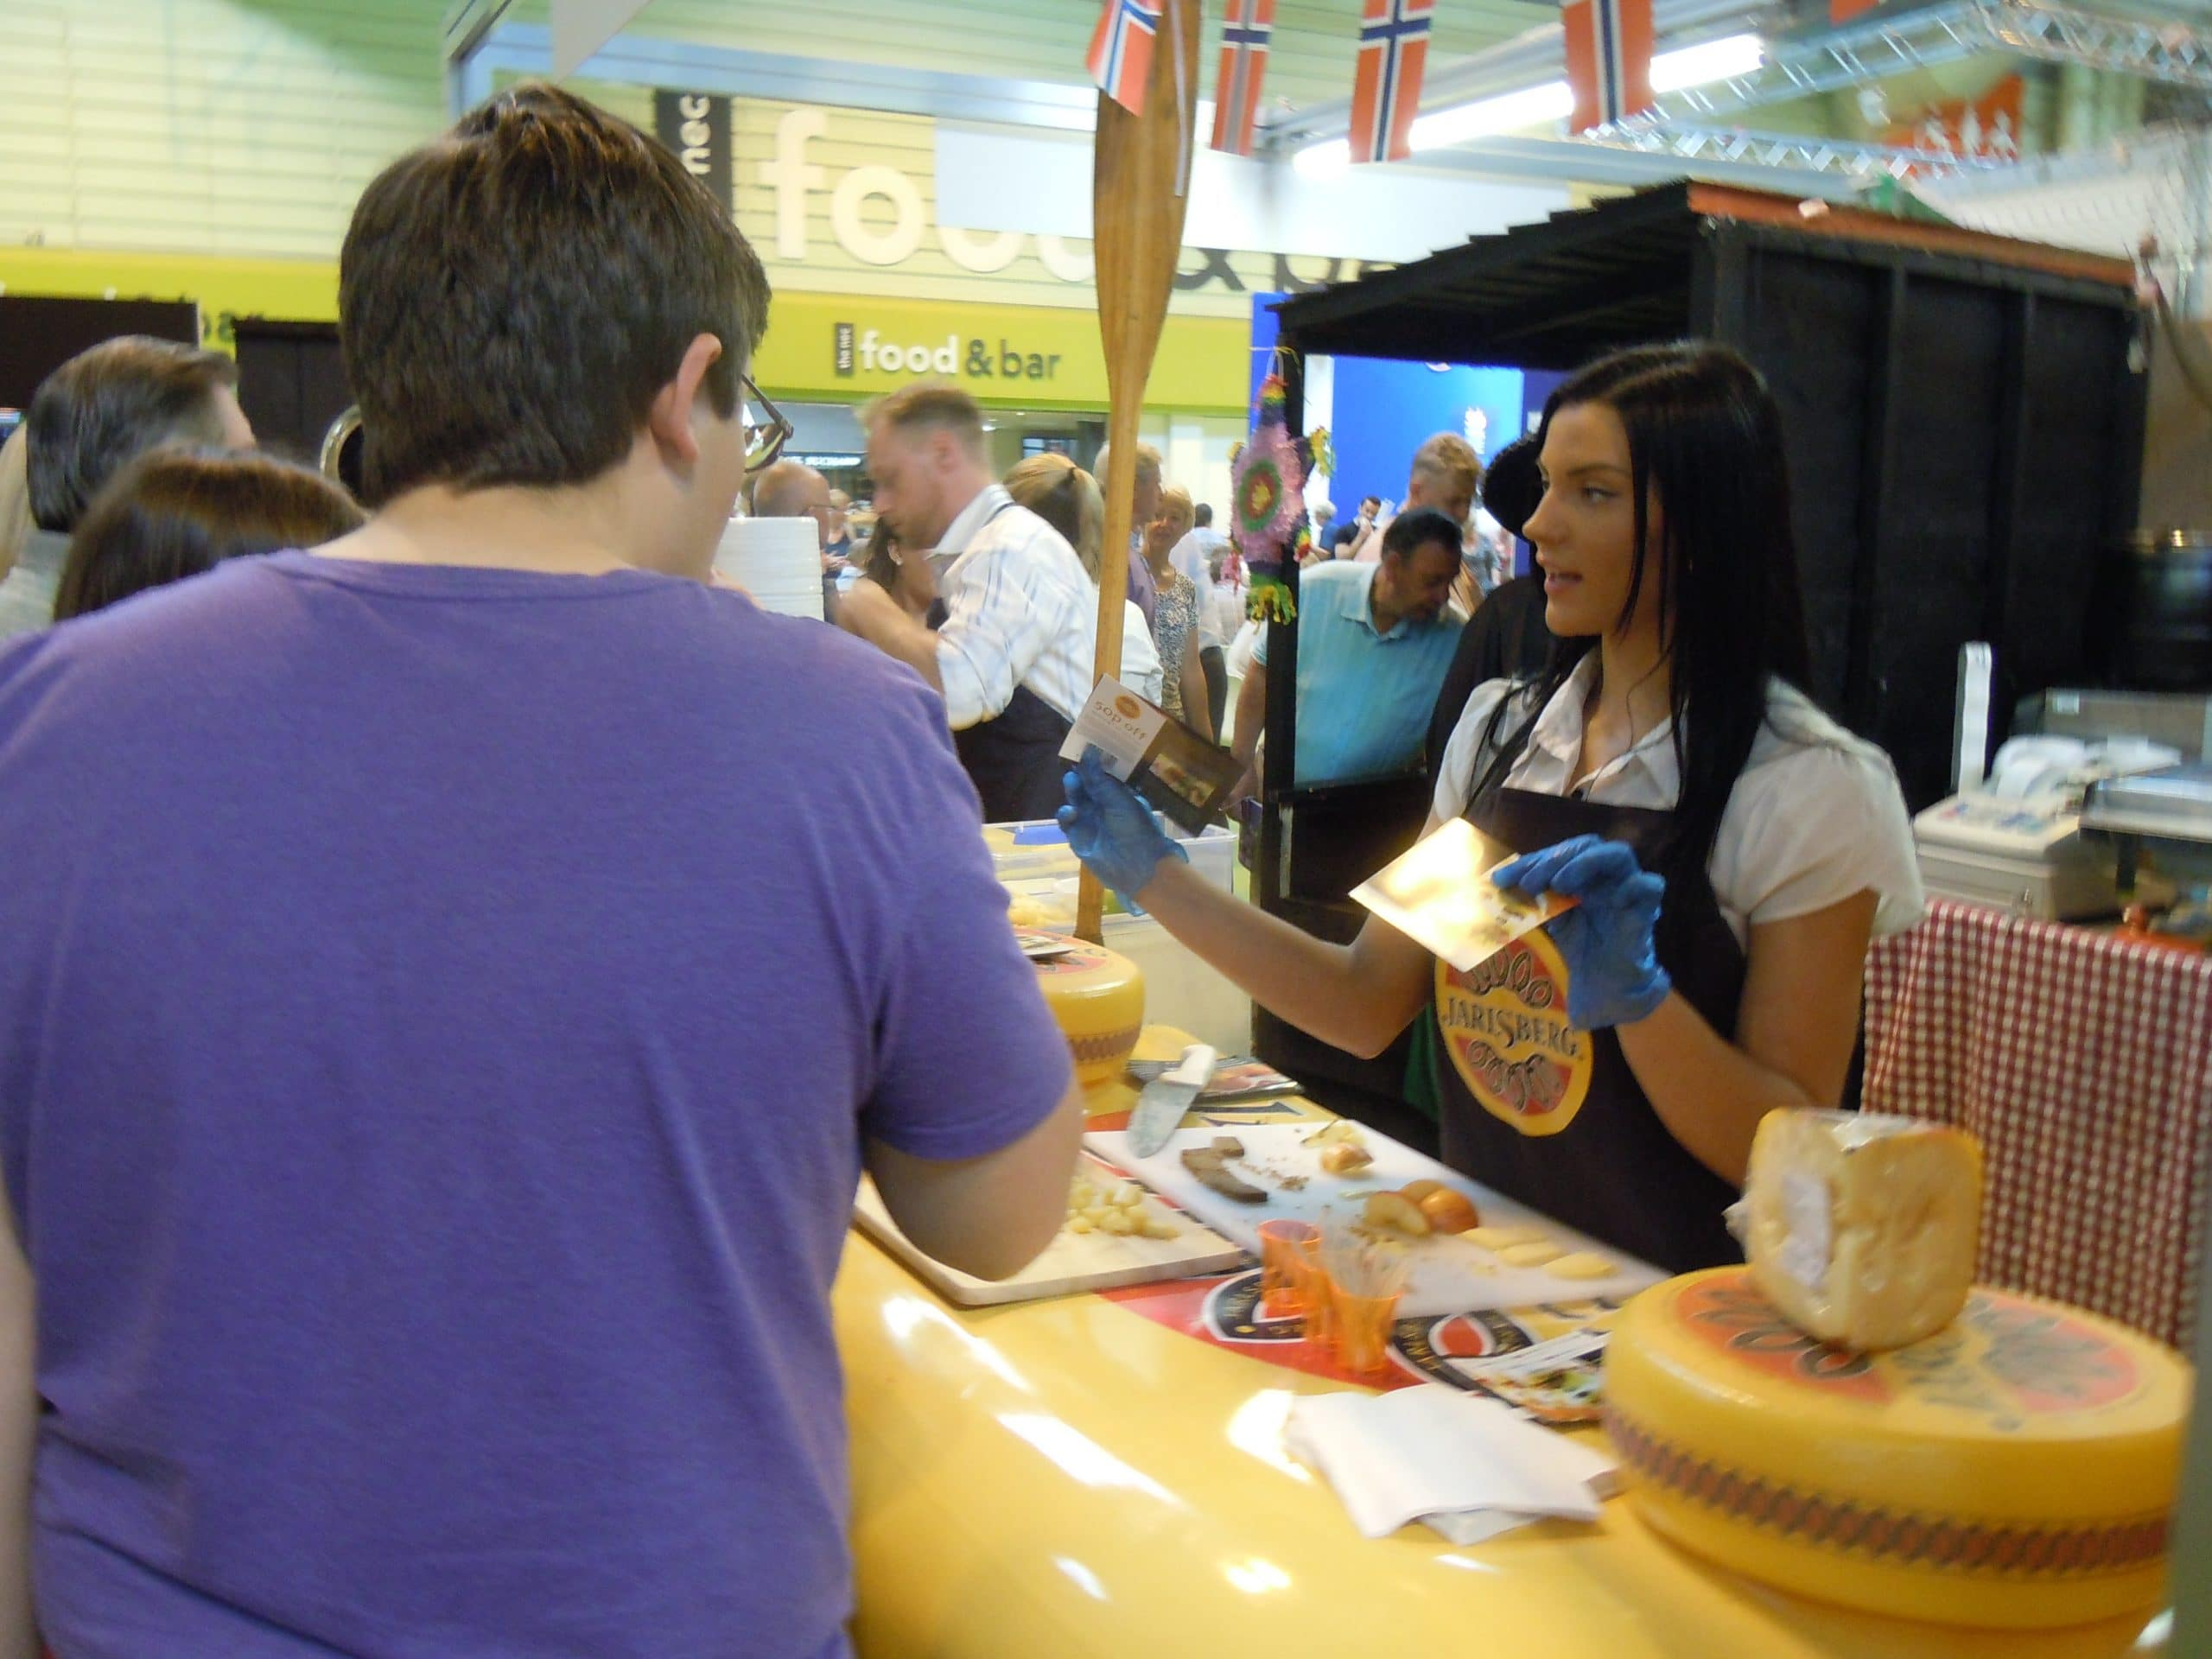 Experiential Marketing and Product Sampling at Trade Shows